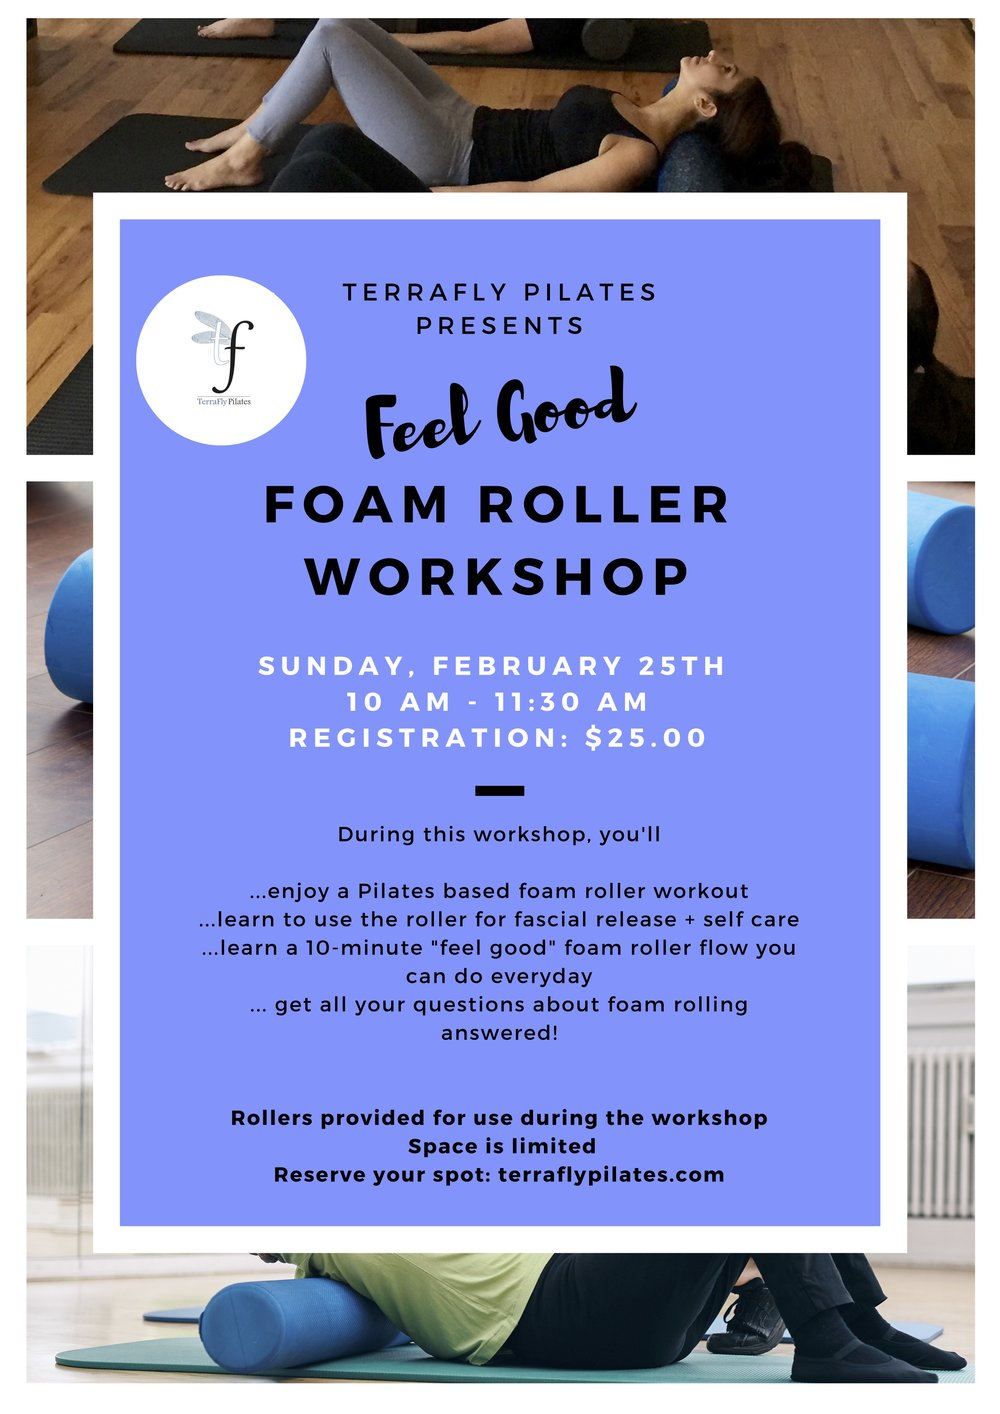 Join Sarah on  Sunday, February 25th from 10:00-11:30am  for this amazing foam roller workshop! You'll learn to use the roller for fascial release, self care and stretching. Foam rollers are provided, but space is limited so sign up today!